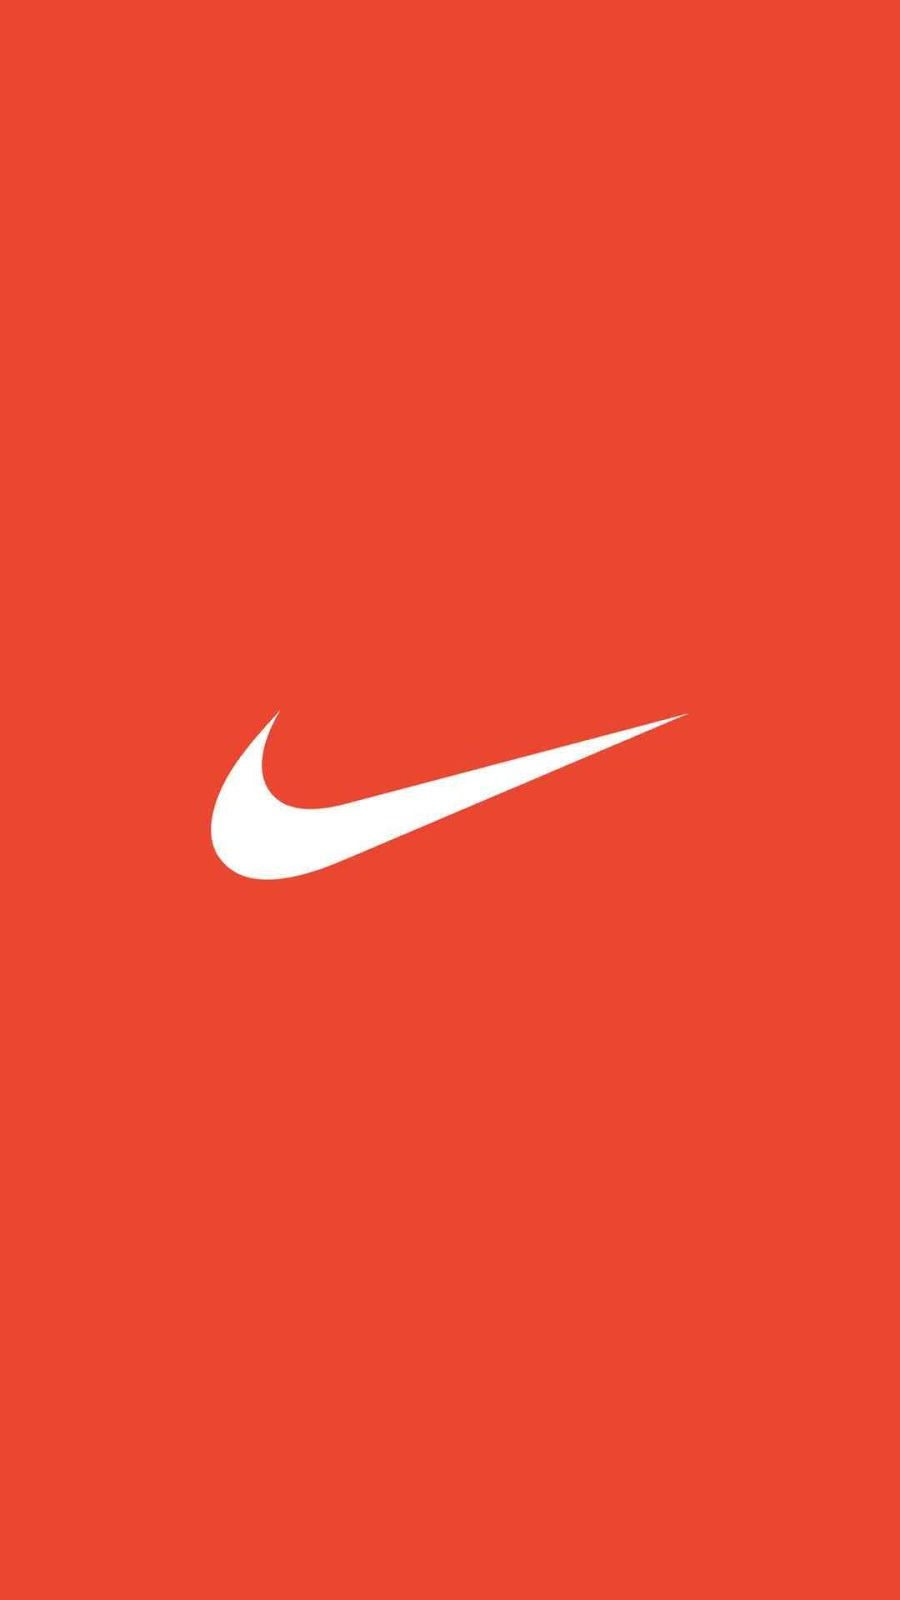 Nike Logo Hd Wallpapers For Iphone X Iphone Xr Iphone 11 Etc Nike Wallpaper Nike Logo Wallpapers Nike Wallpaper Iphone